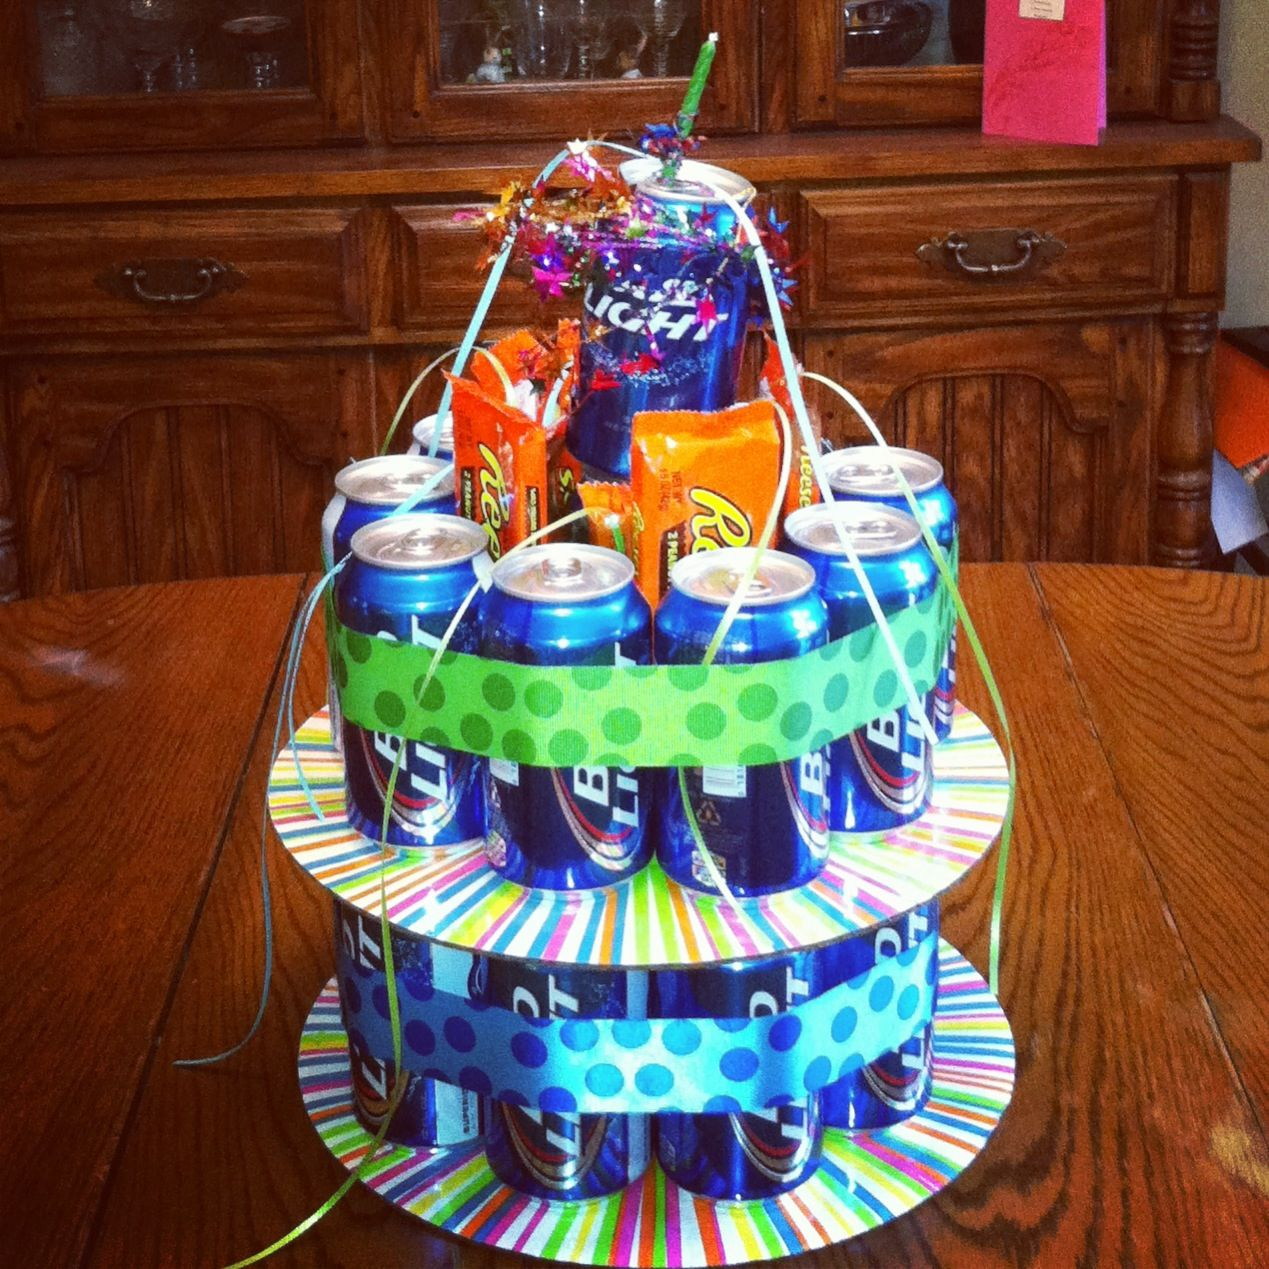 21st birthday cake for my brother Birthday ideas Pinterest